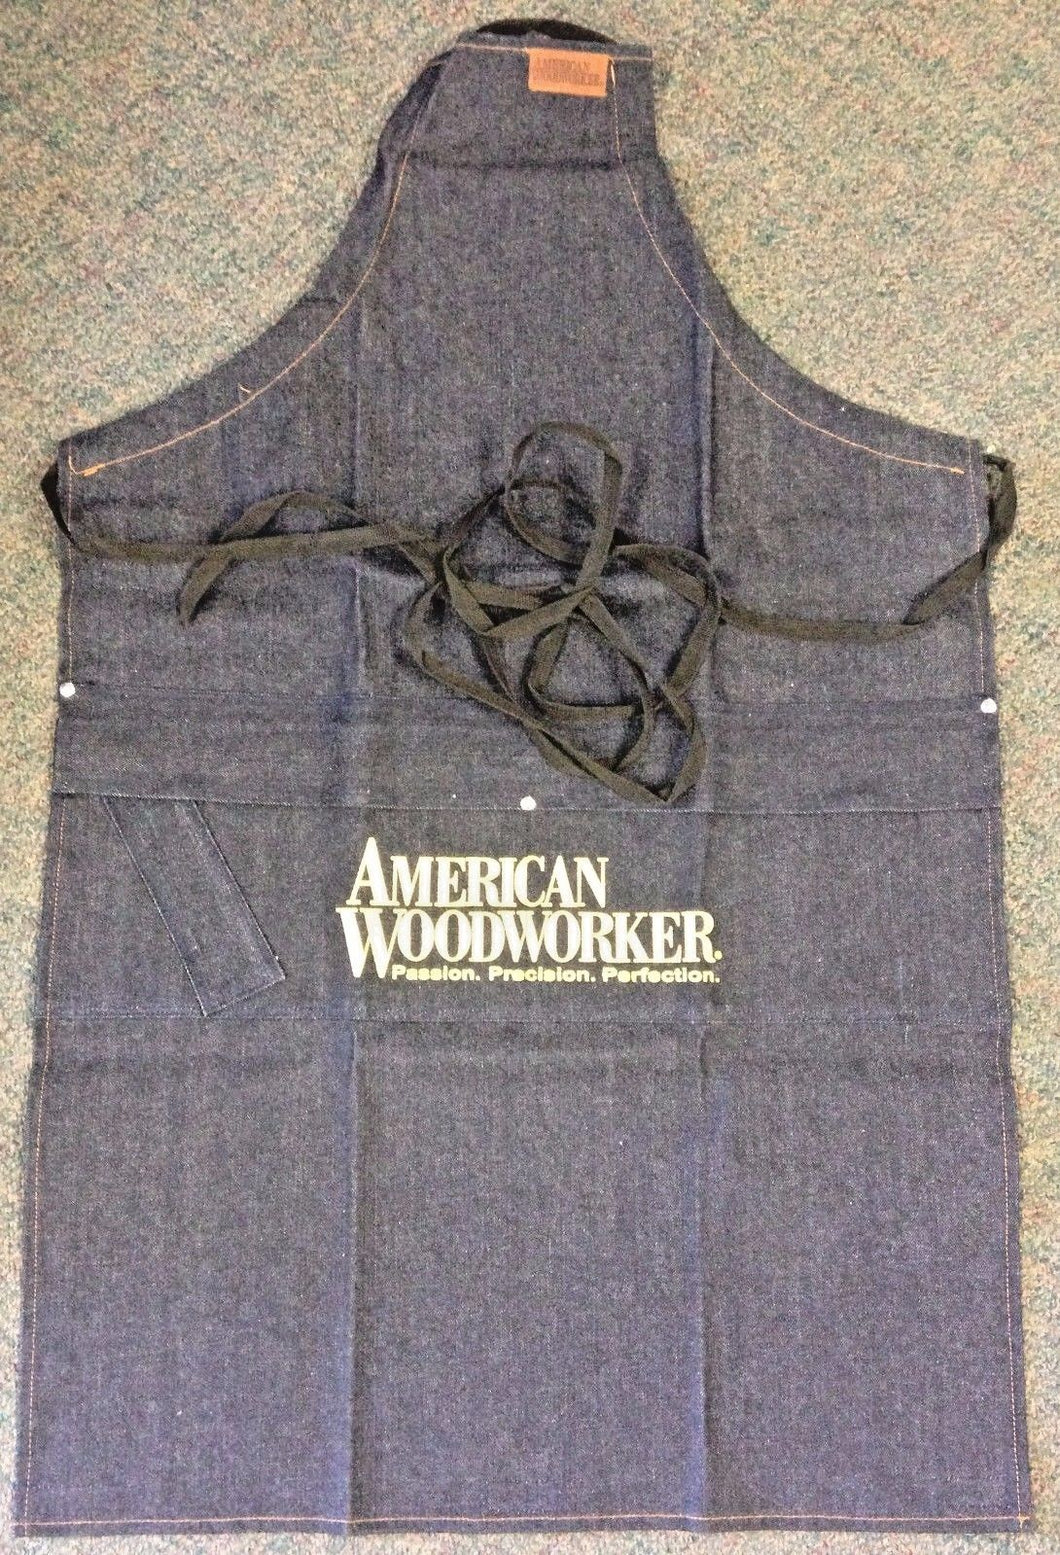 American Woodworker 125 2 in 1 Carpenter Shop Apron Denim 25